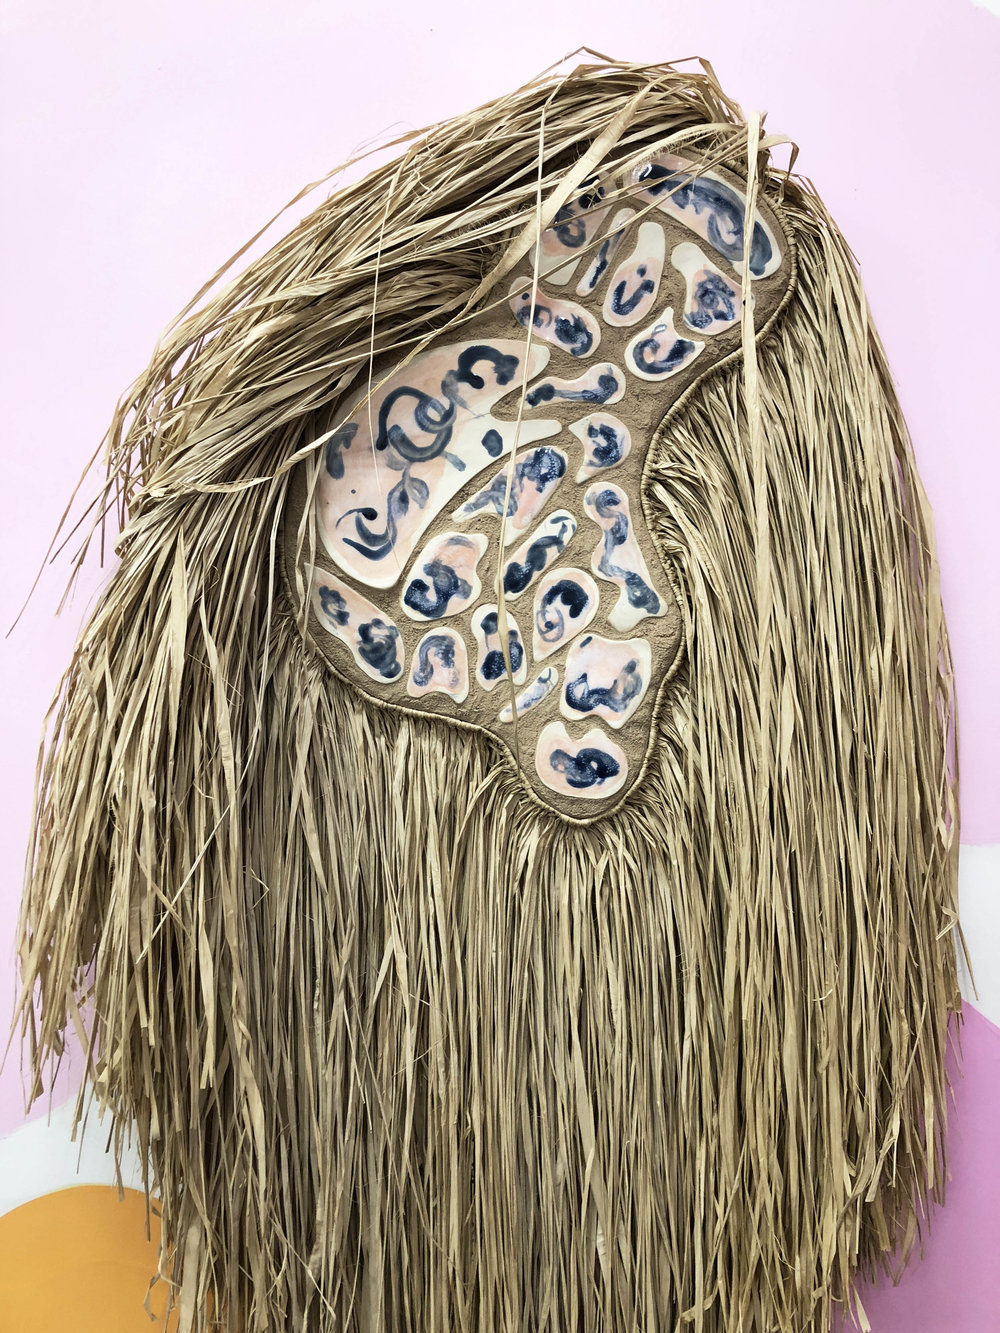 Desert Wildman I (detail)  , 2018, raffia, porcelain, sand on wood panel, 30 x 54 inches